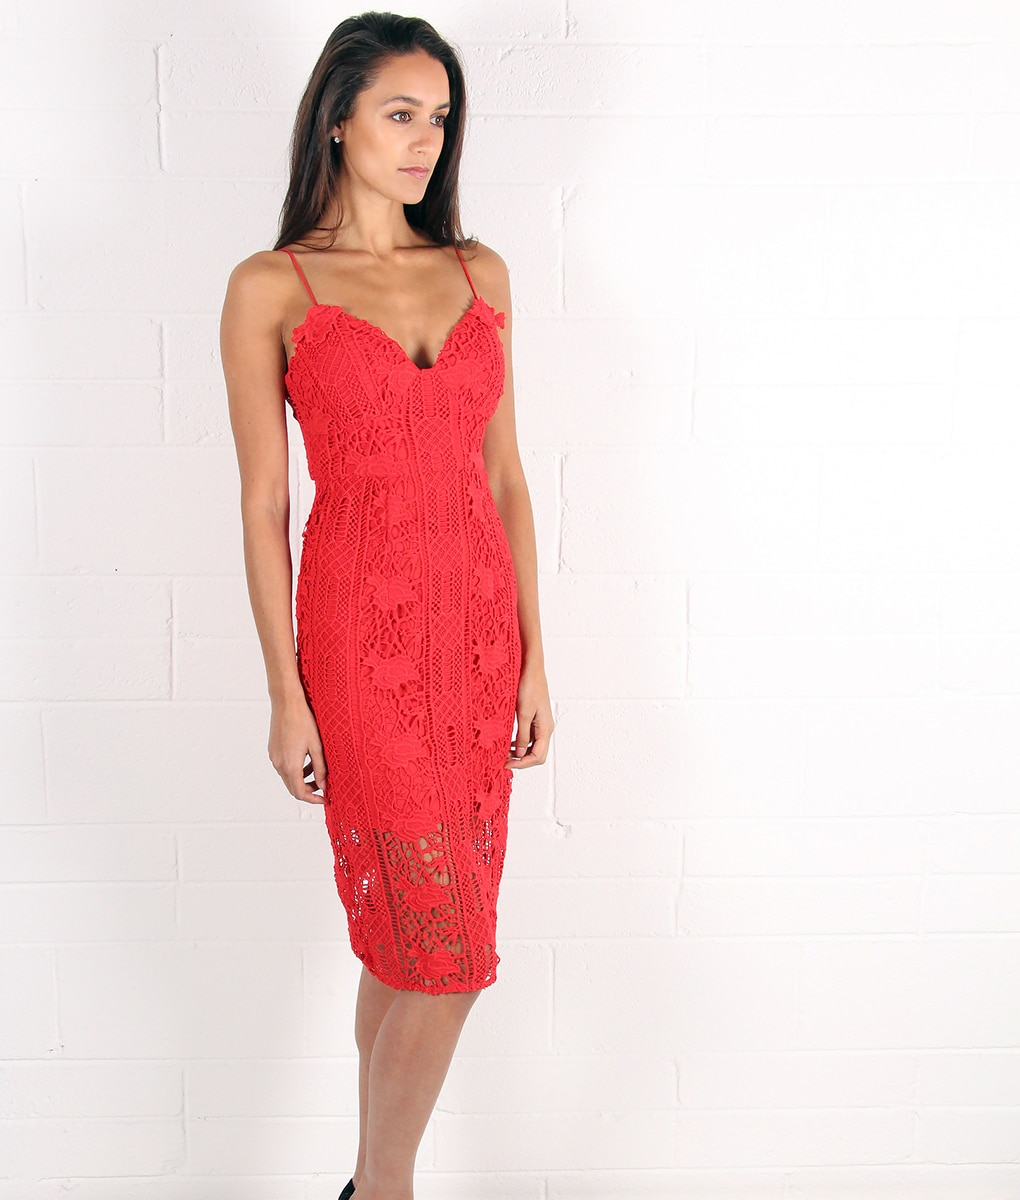 alila-red-crochet-dress-for-wedding-by-lumier-by-bariano